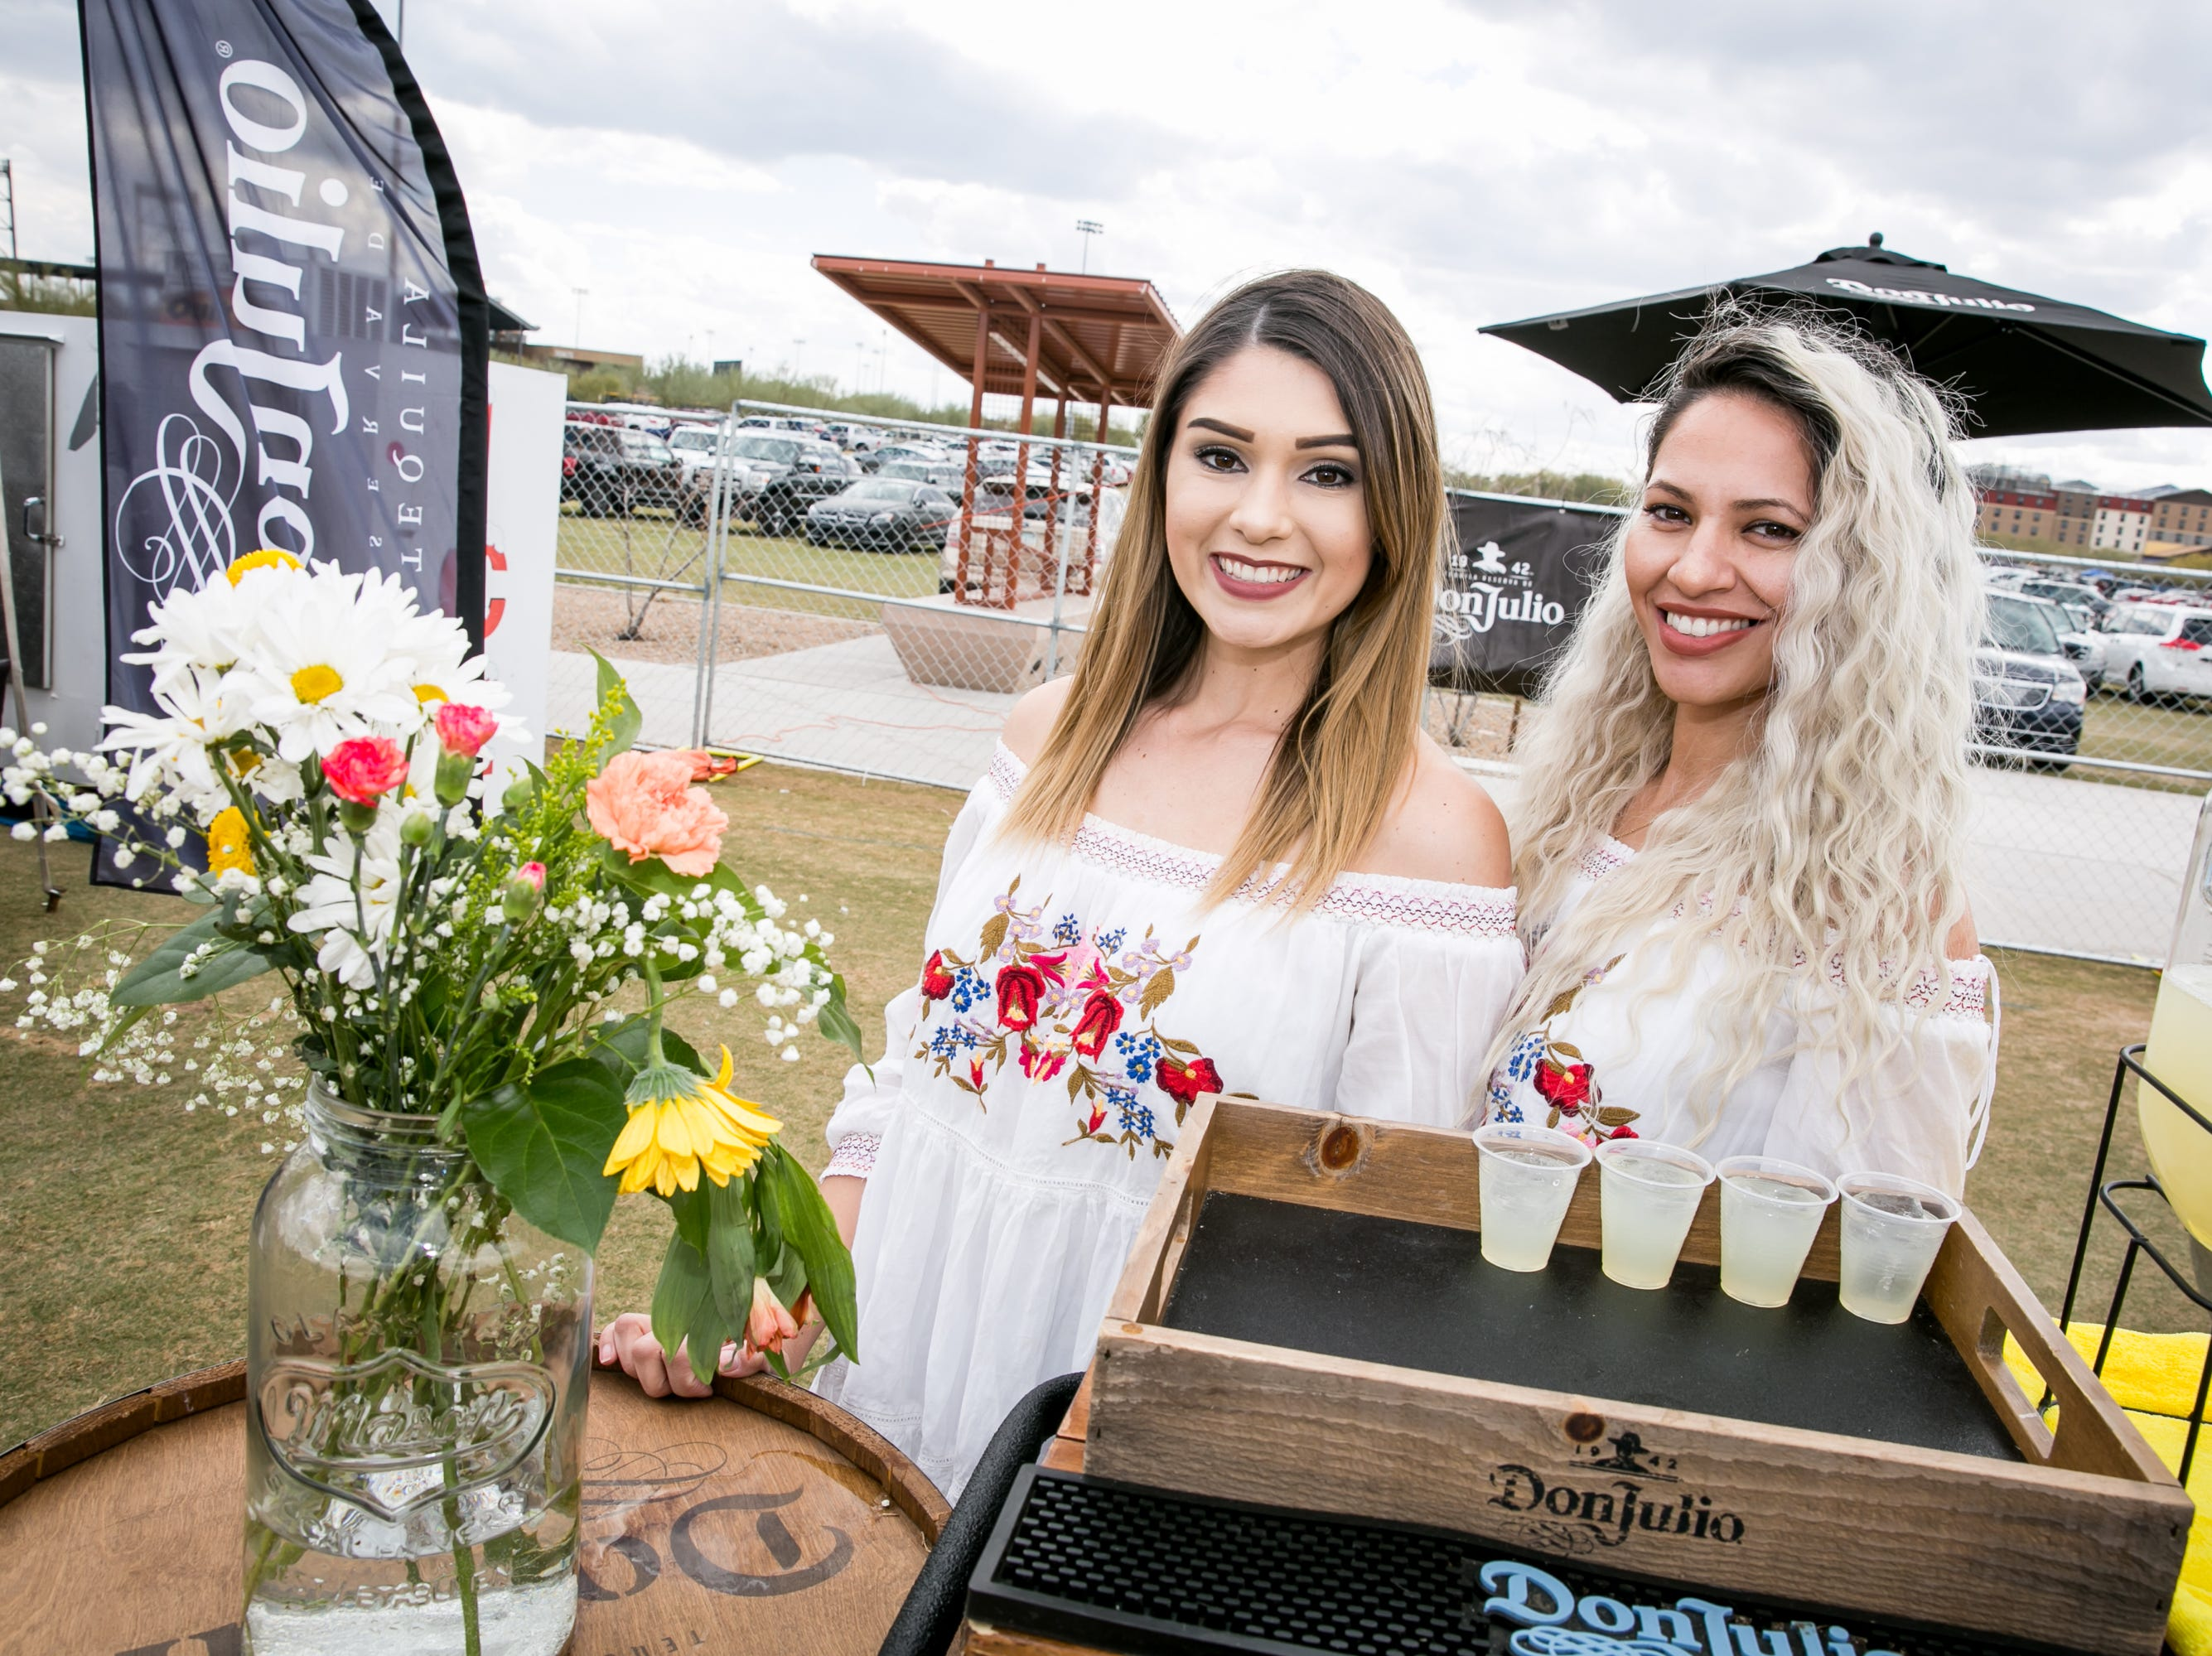 Don Julio's free samples were amazing during the Street Eats Food Truck Festival at Salt River Fields near Scottsdale on Feb. 17, 2019.